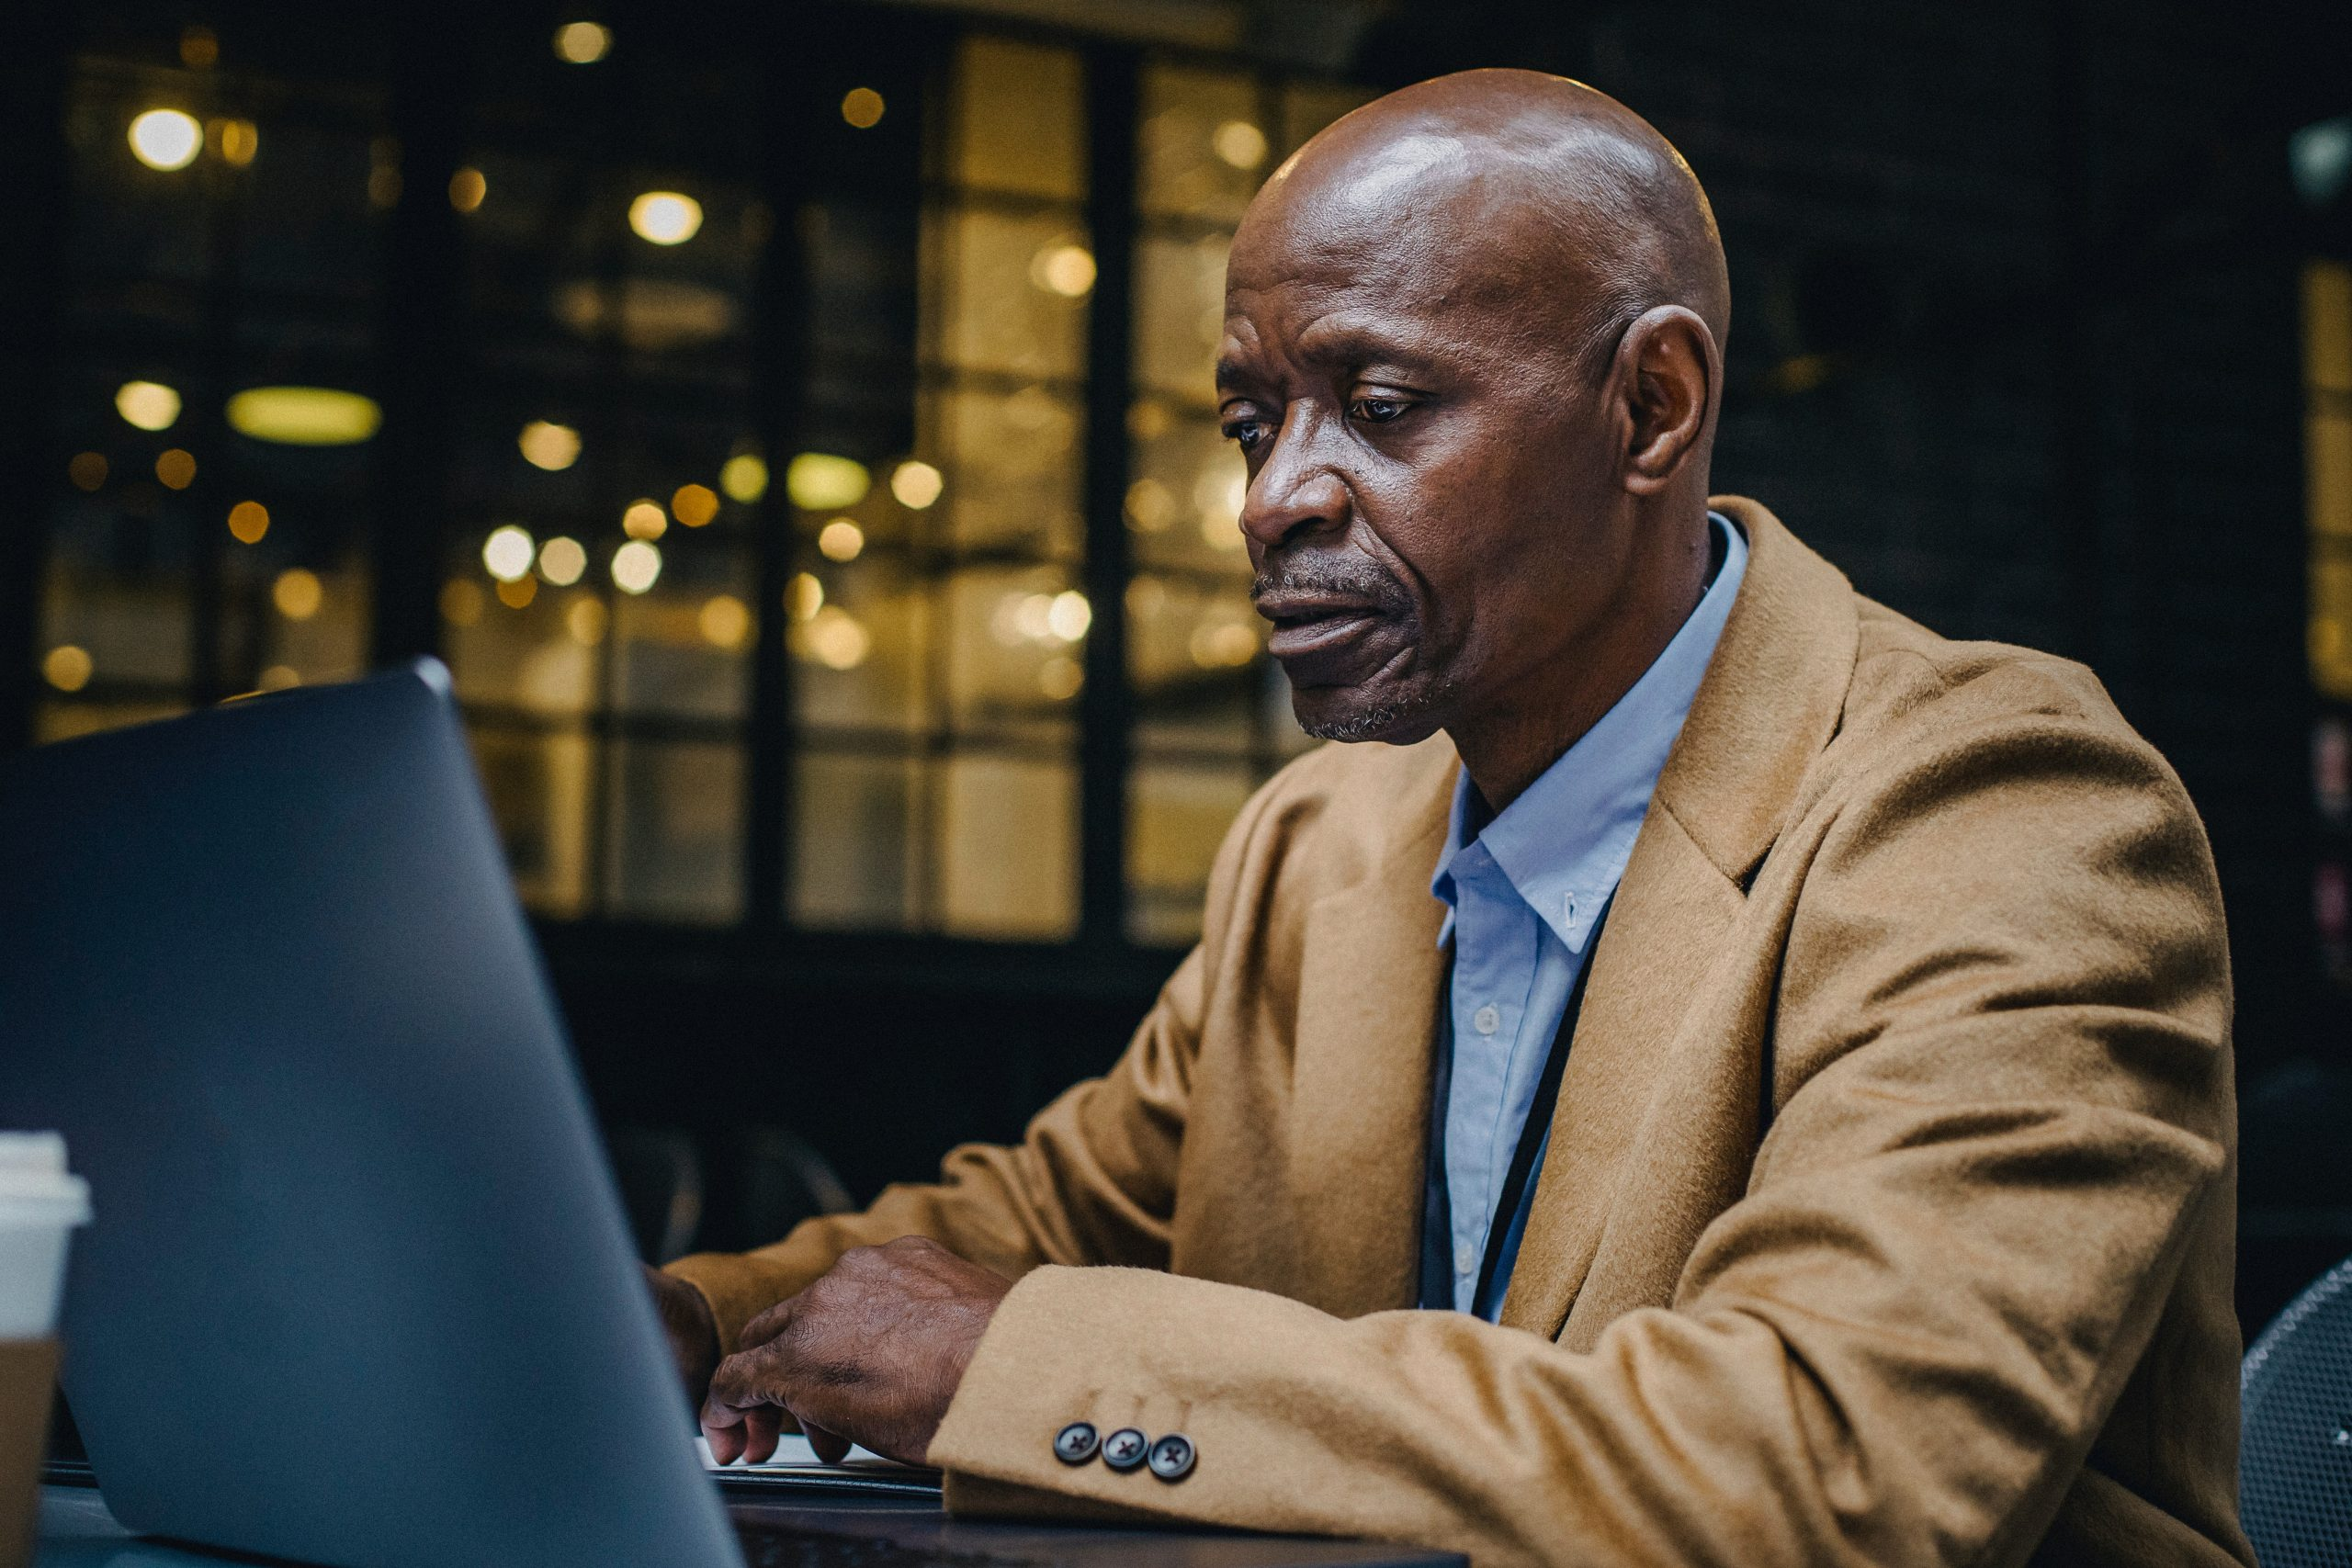 older man at laptop computer